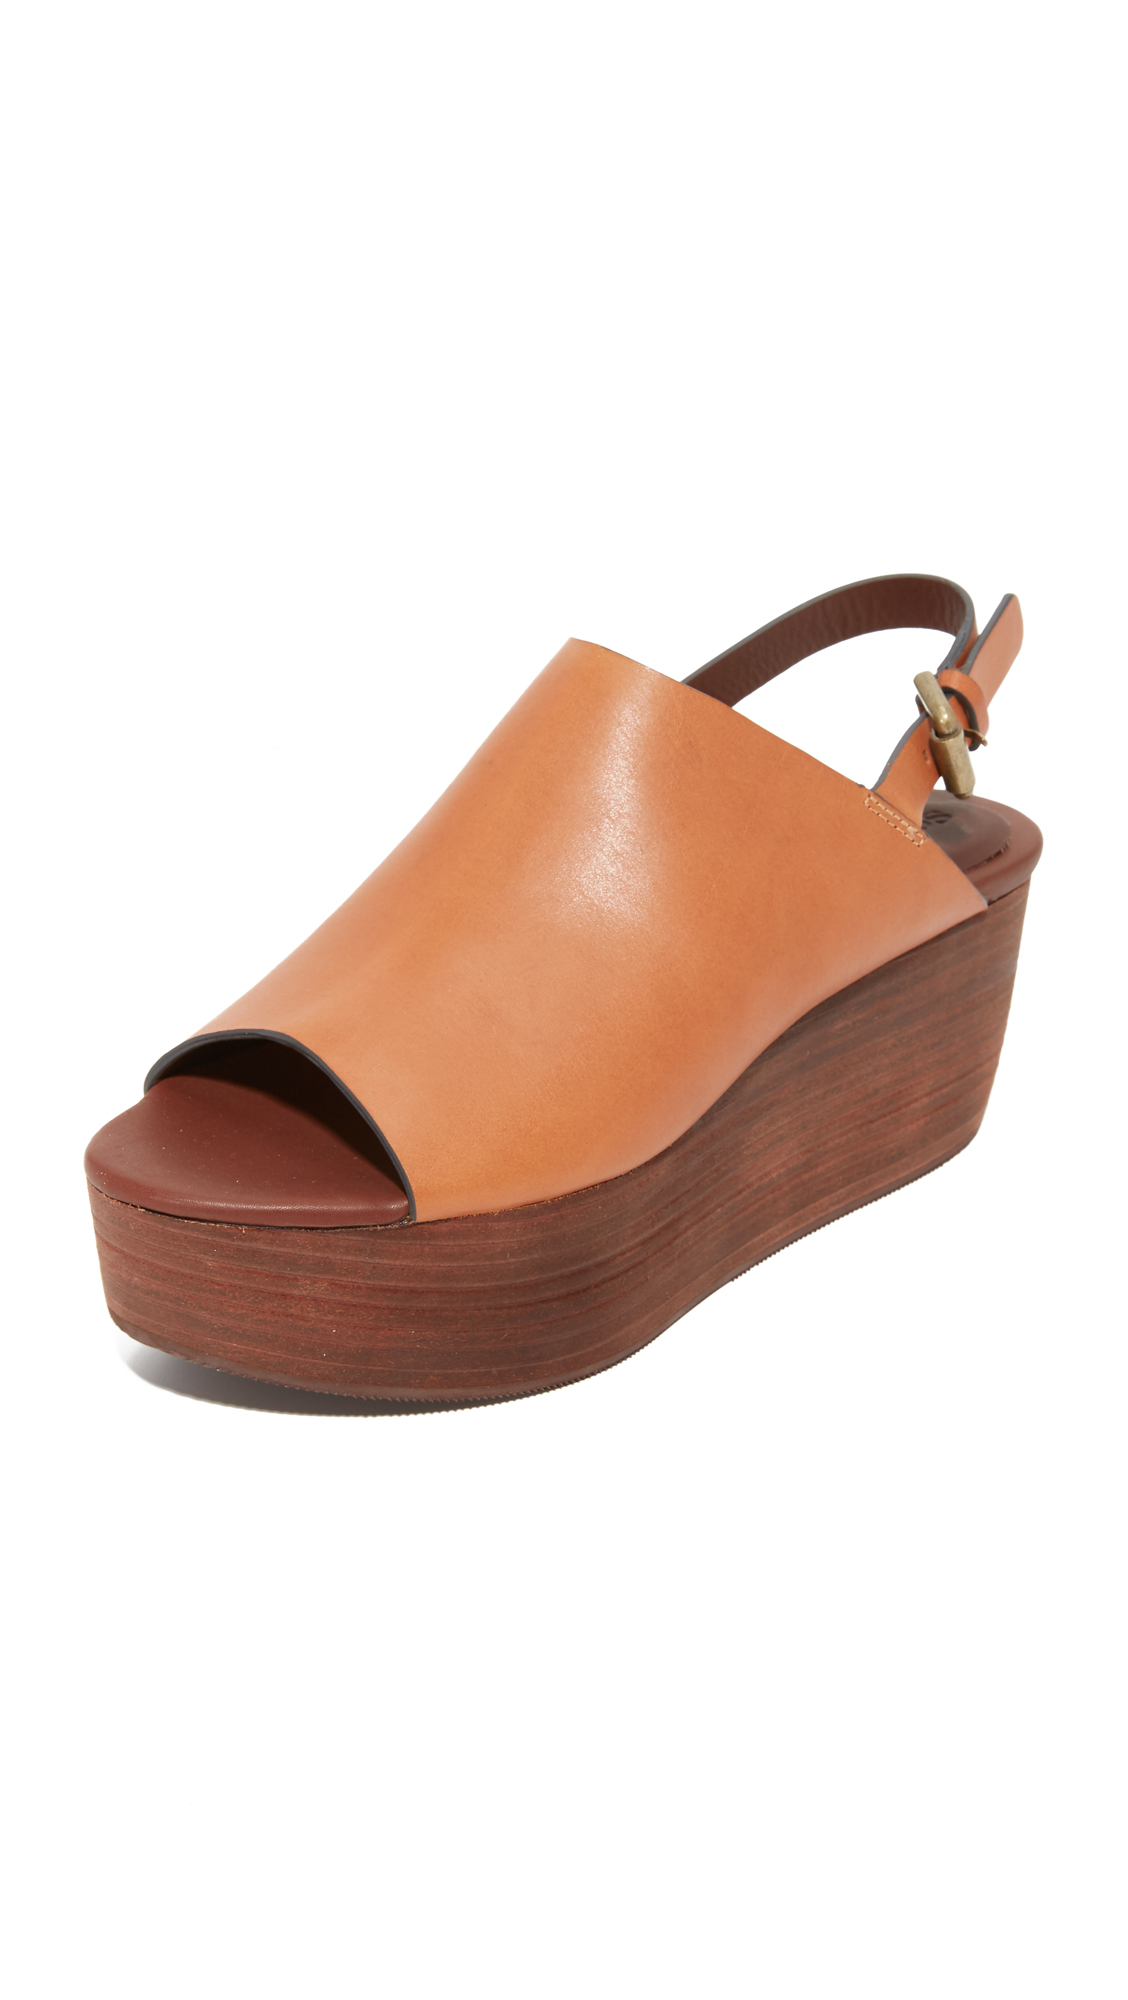 5c47156e28b1 See by Chloe Lilly Flatform Sandals